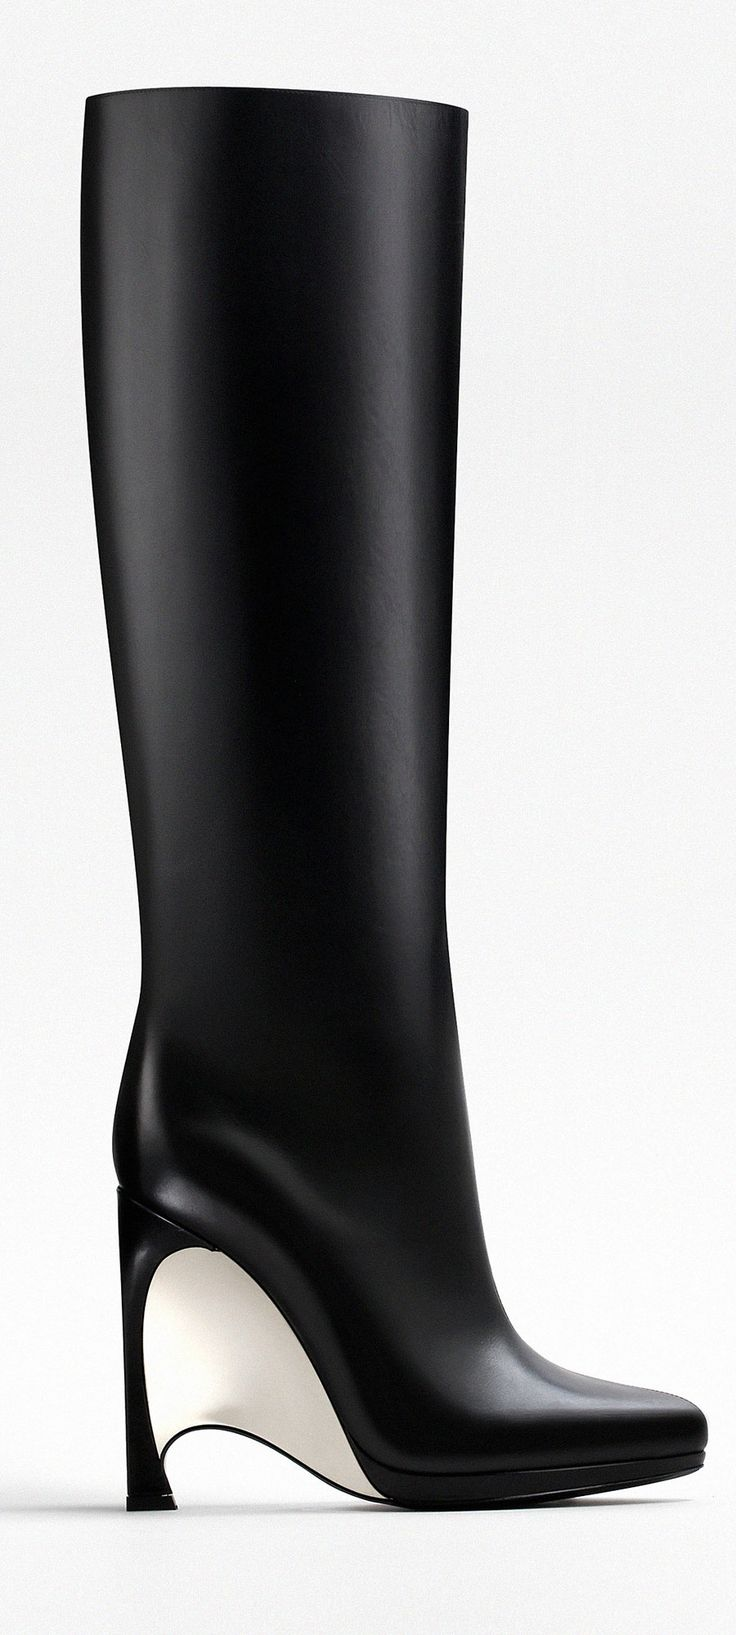 Dior FW2014 ~ black leather boot enhanced with a mirror effect wedge heel